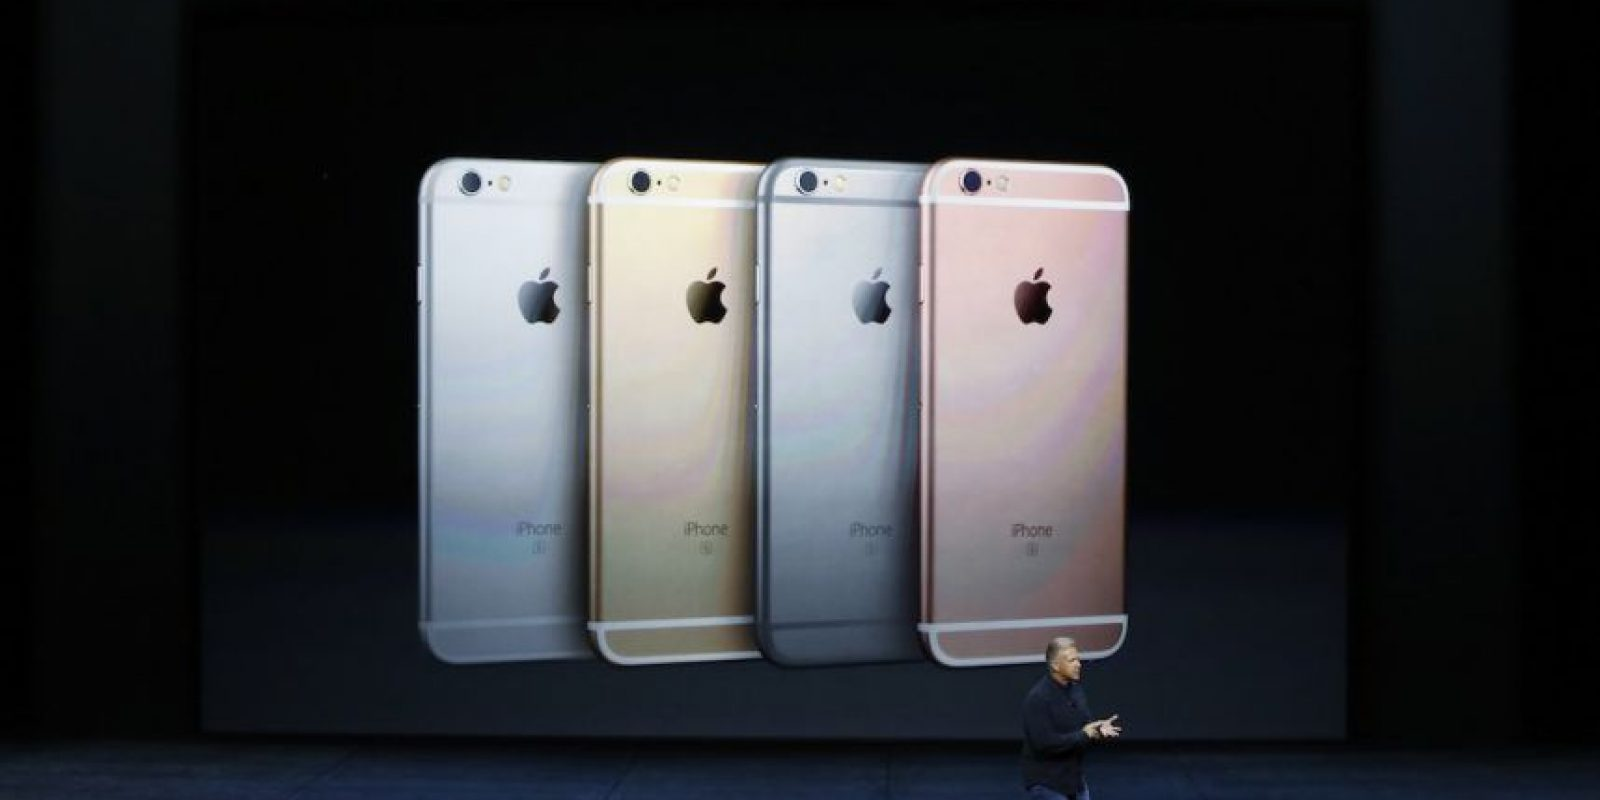 Apareció el iPhone 6s y iPhone 6s Plus. Foto: Getty Images